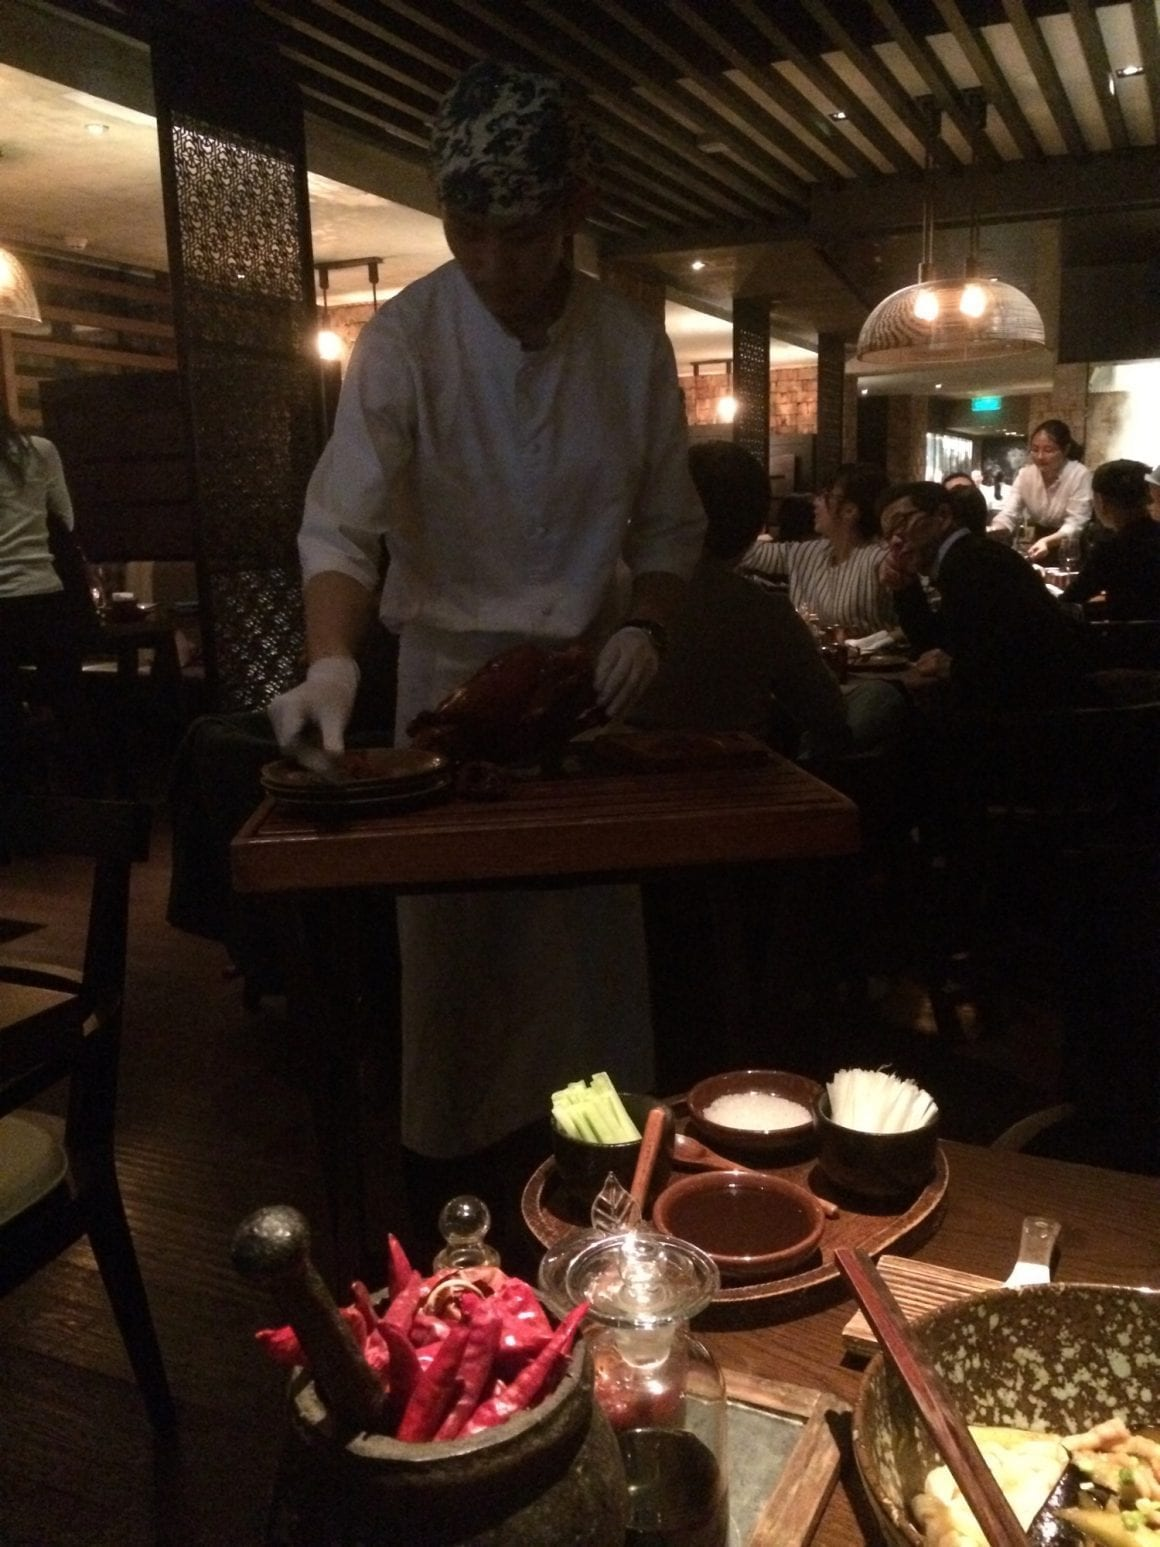 Country Kitchen - Peking Duck at the table